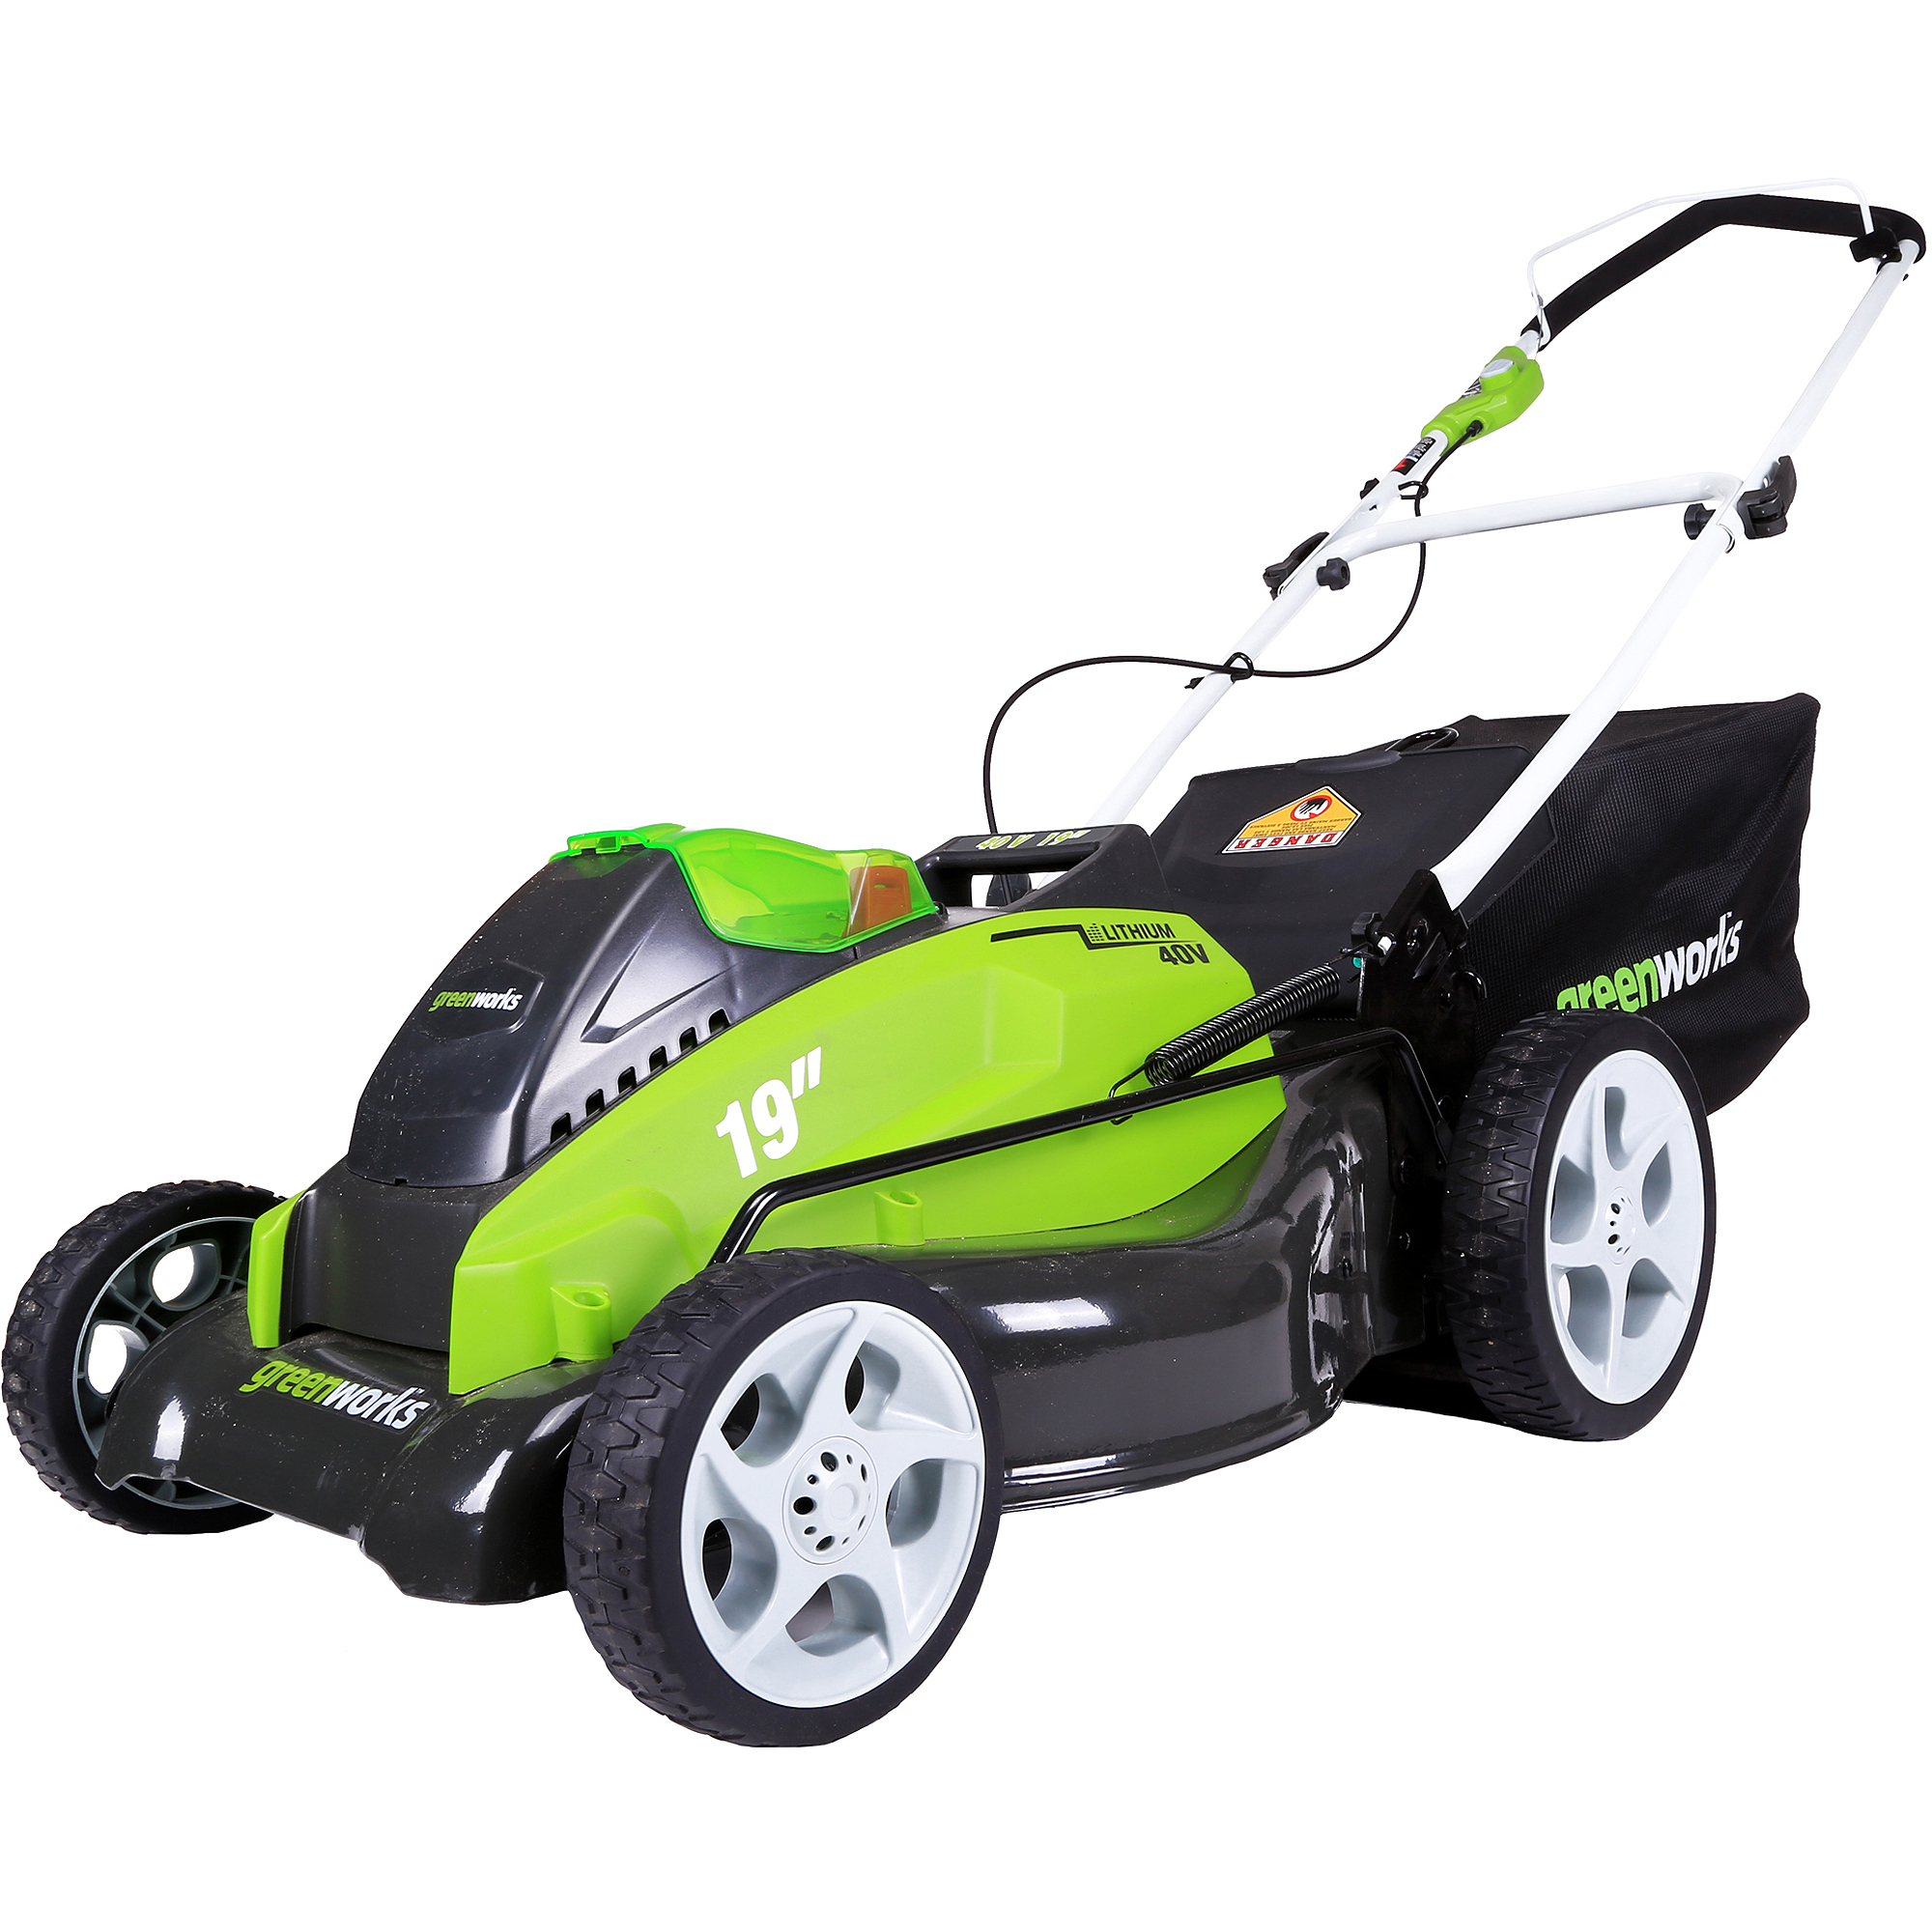 "GreenWorks 25223 40V 19"" Cordless Lawn Mower, Includes 2 Batteries and a Charger"